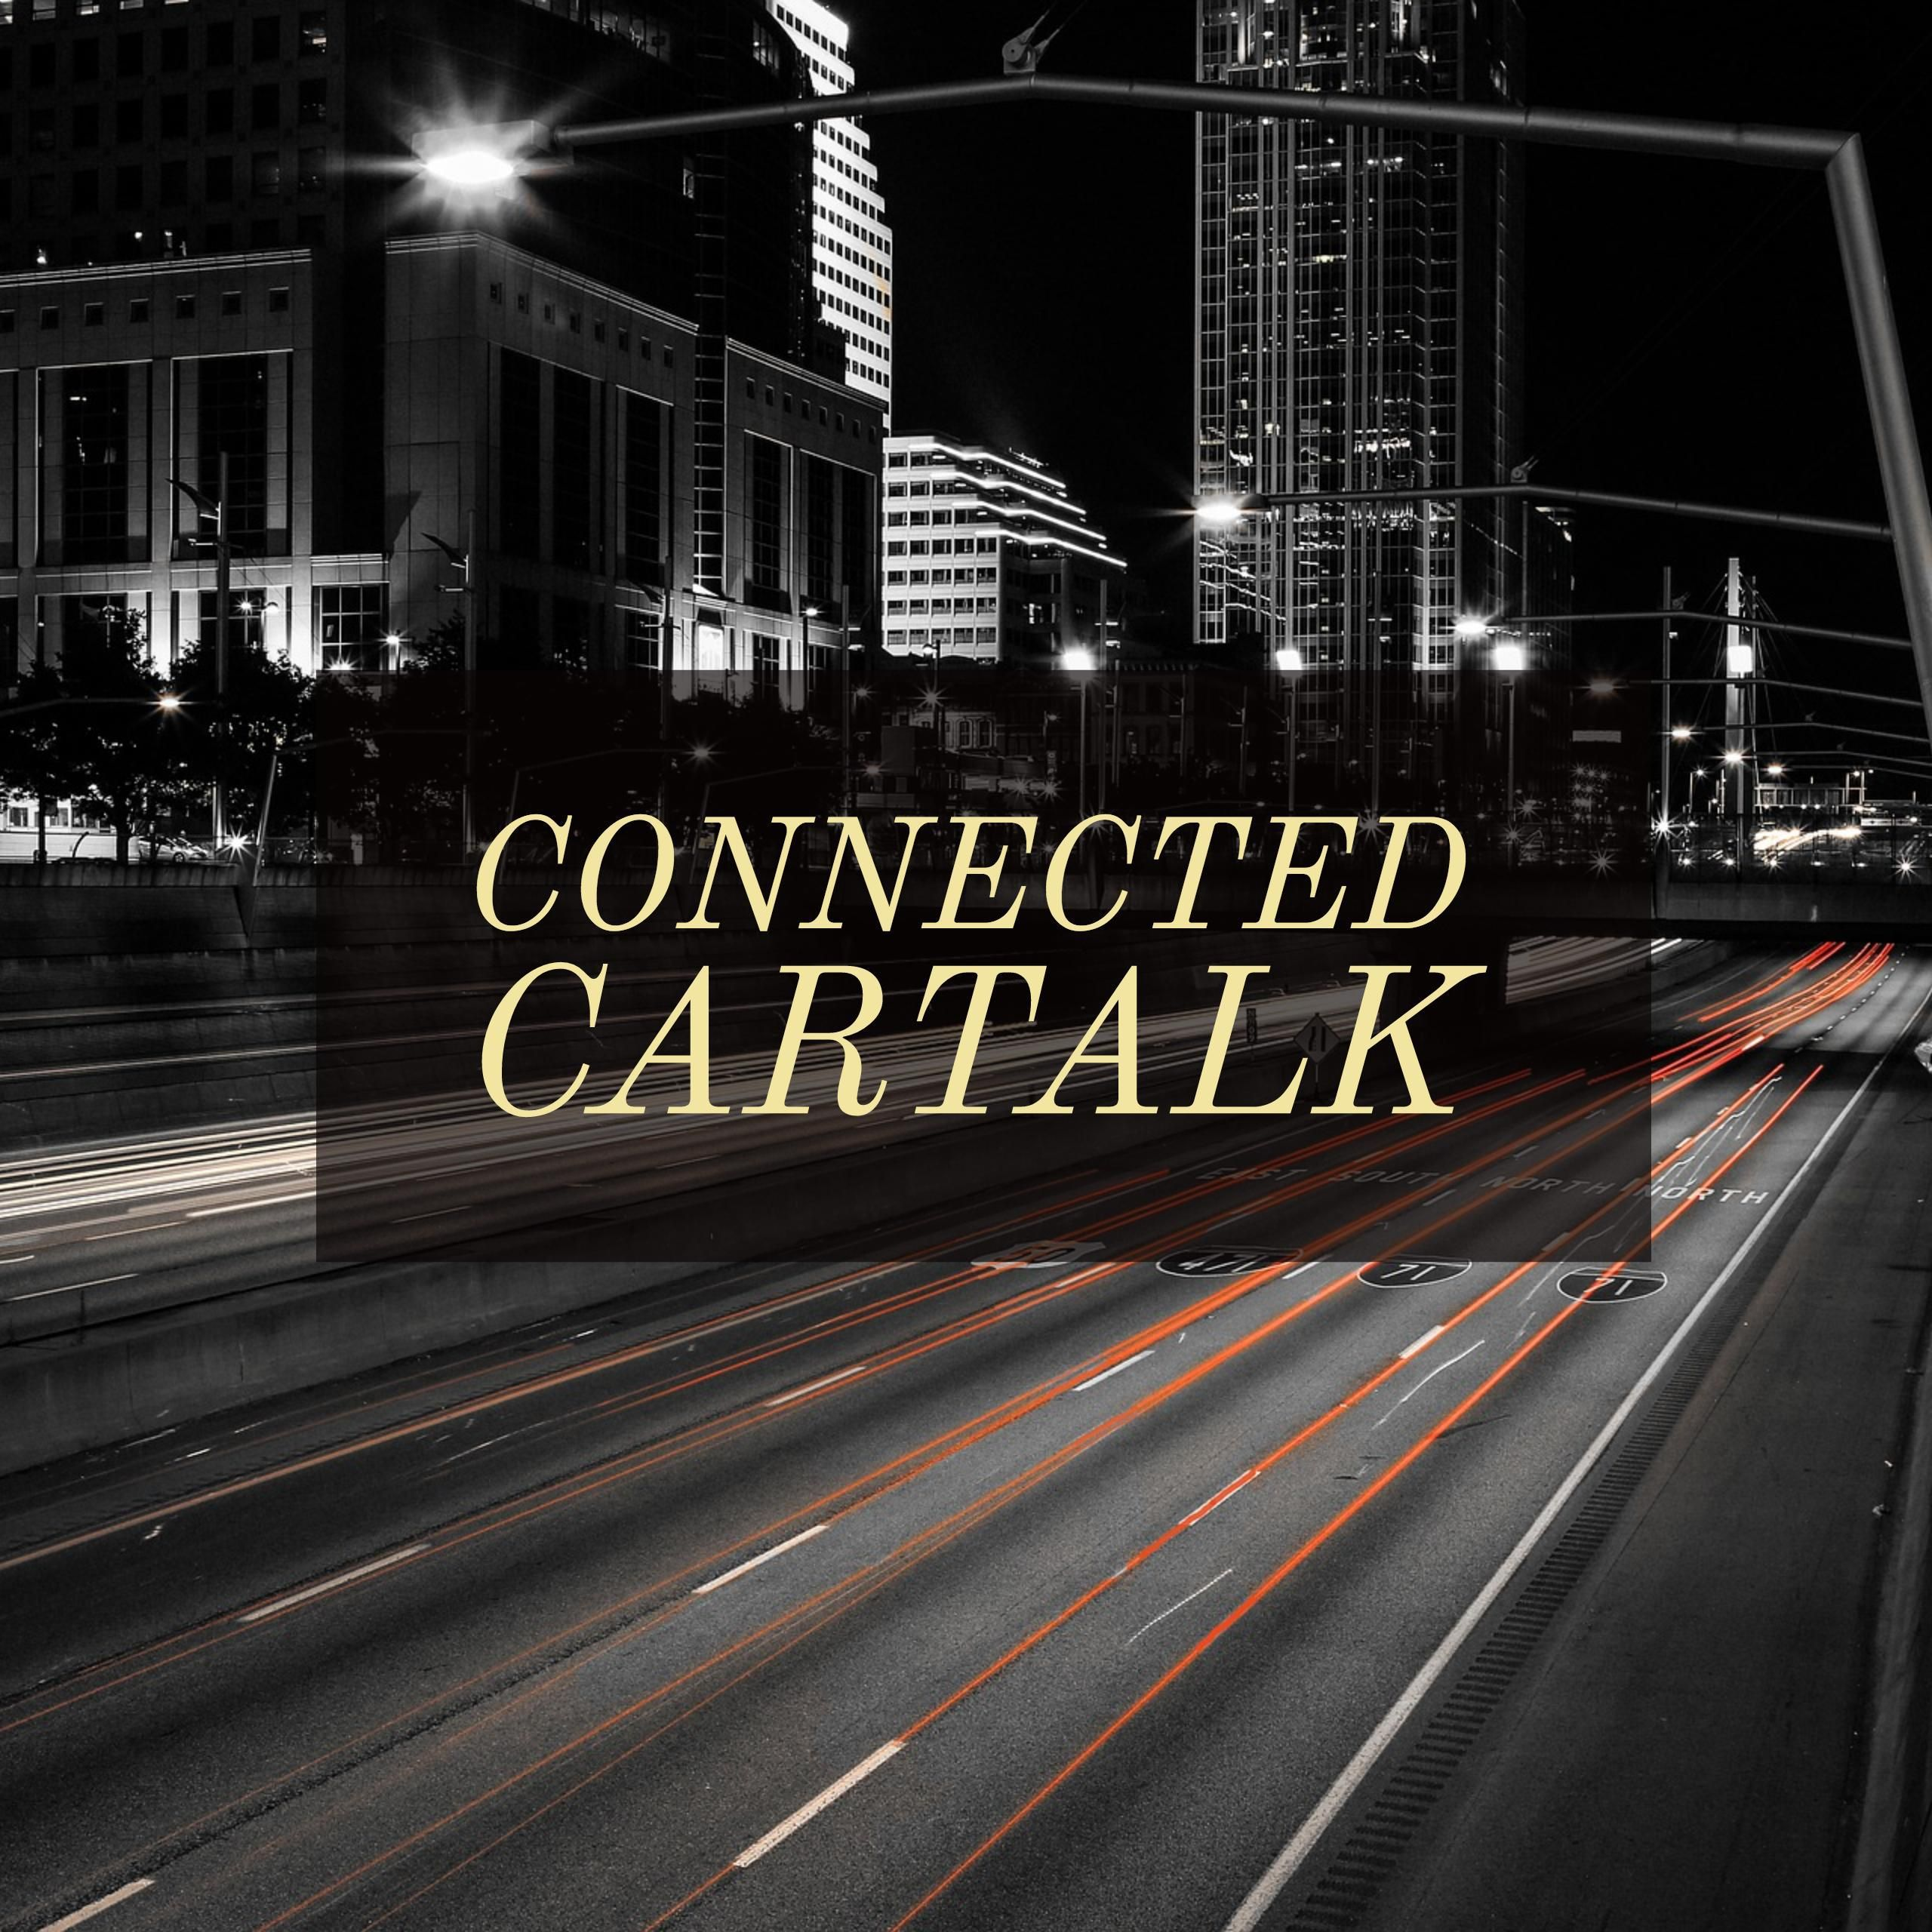 Connected CarTalk: Mobility Tech Happy Hours